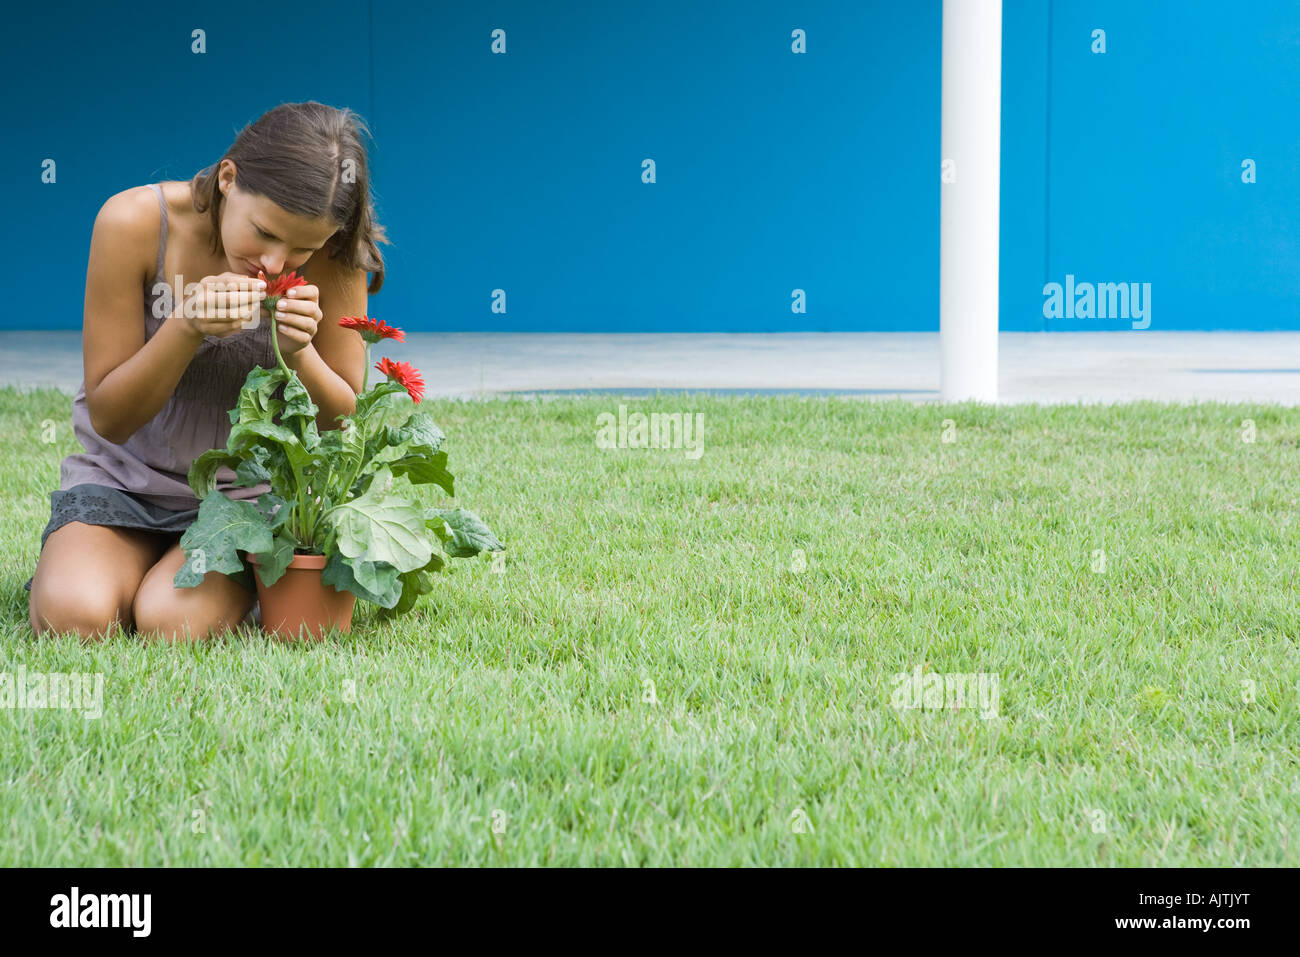 Young woman smelling gerbera daisy, kneeling on grass, full length - Stock Image